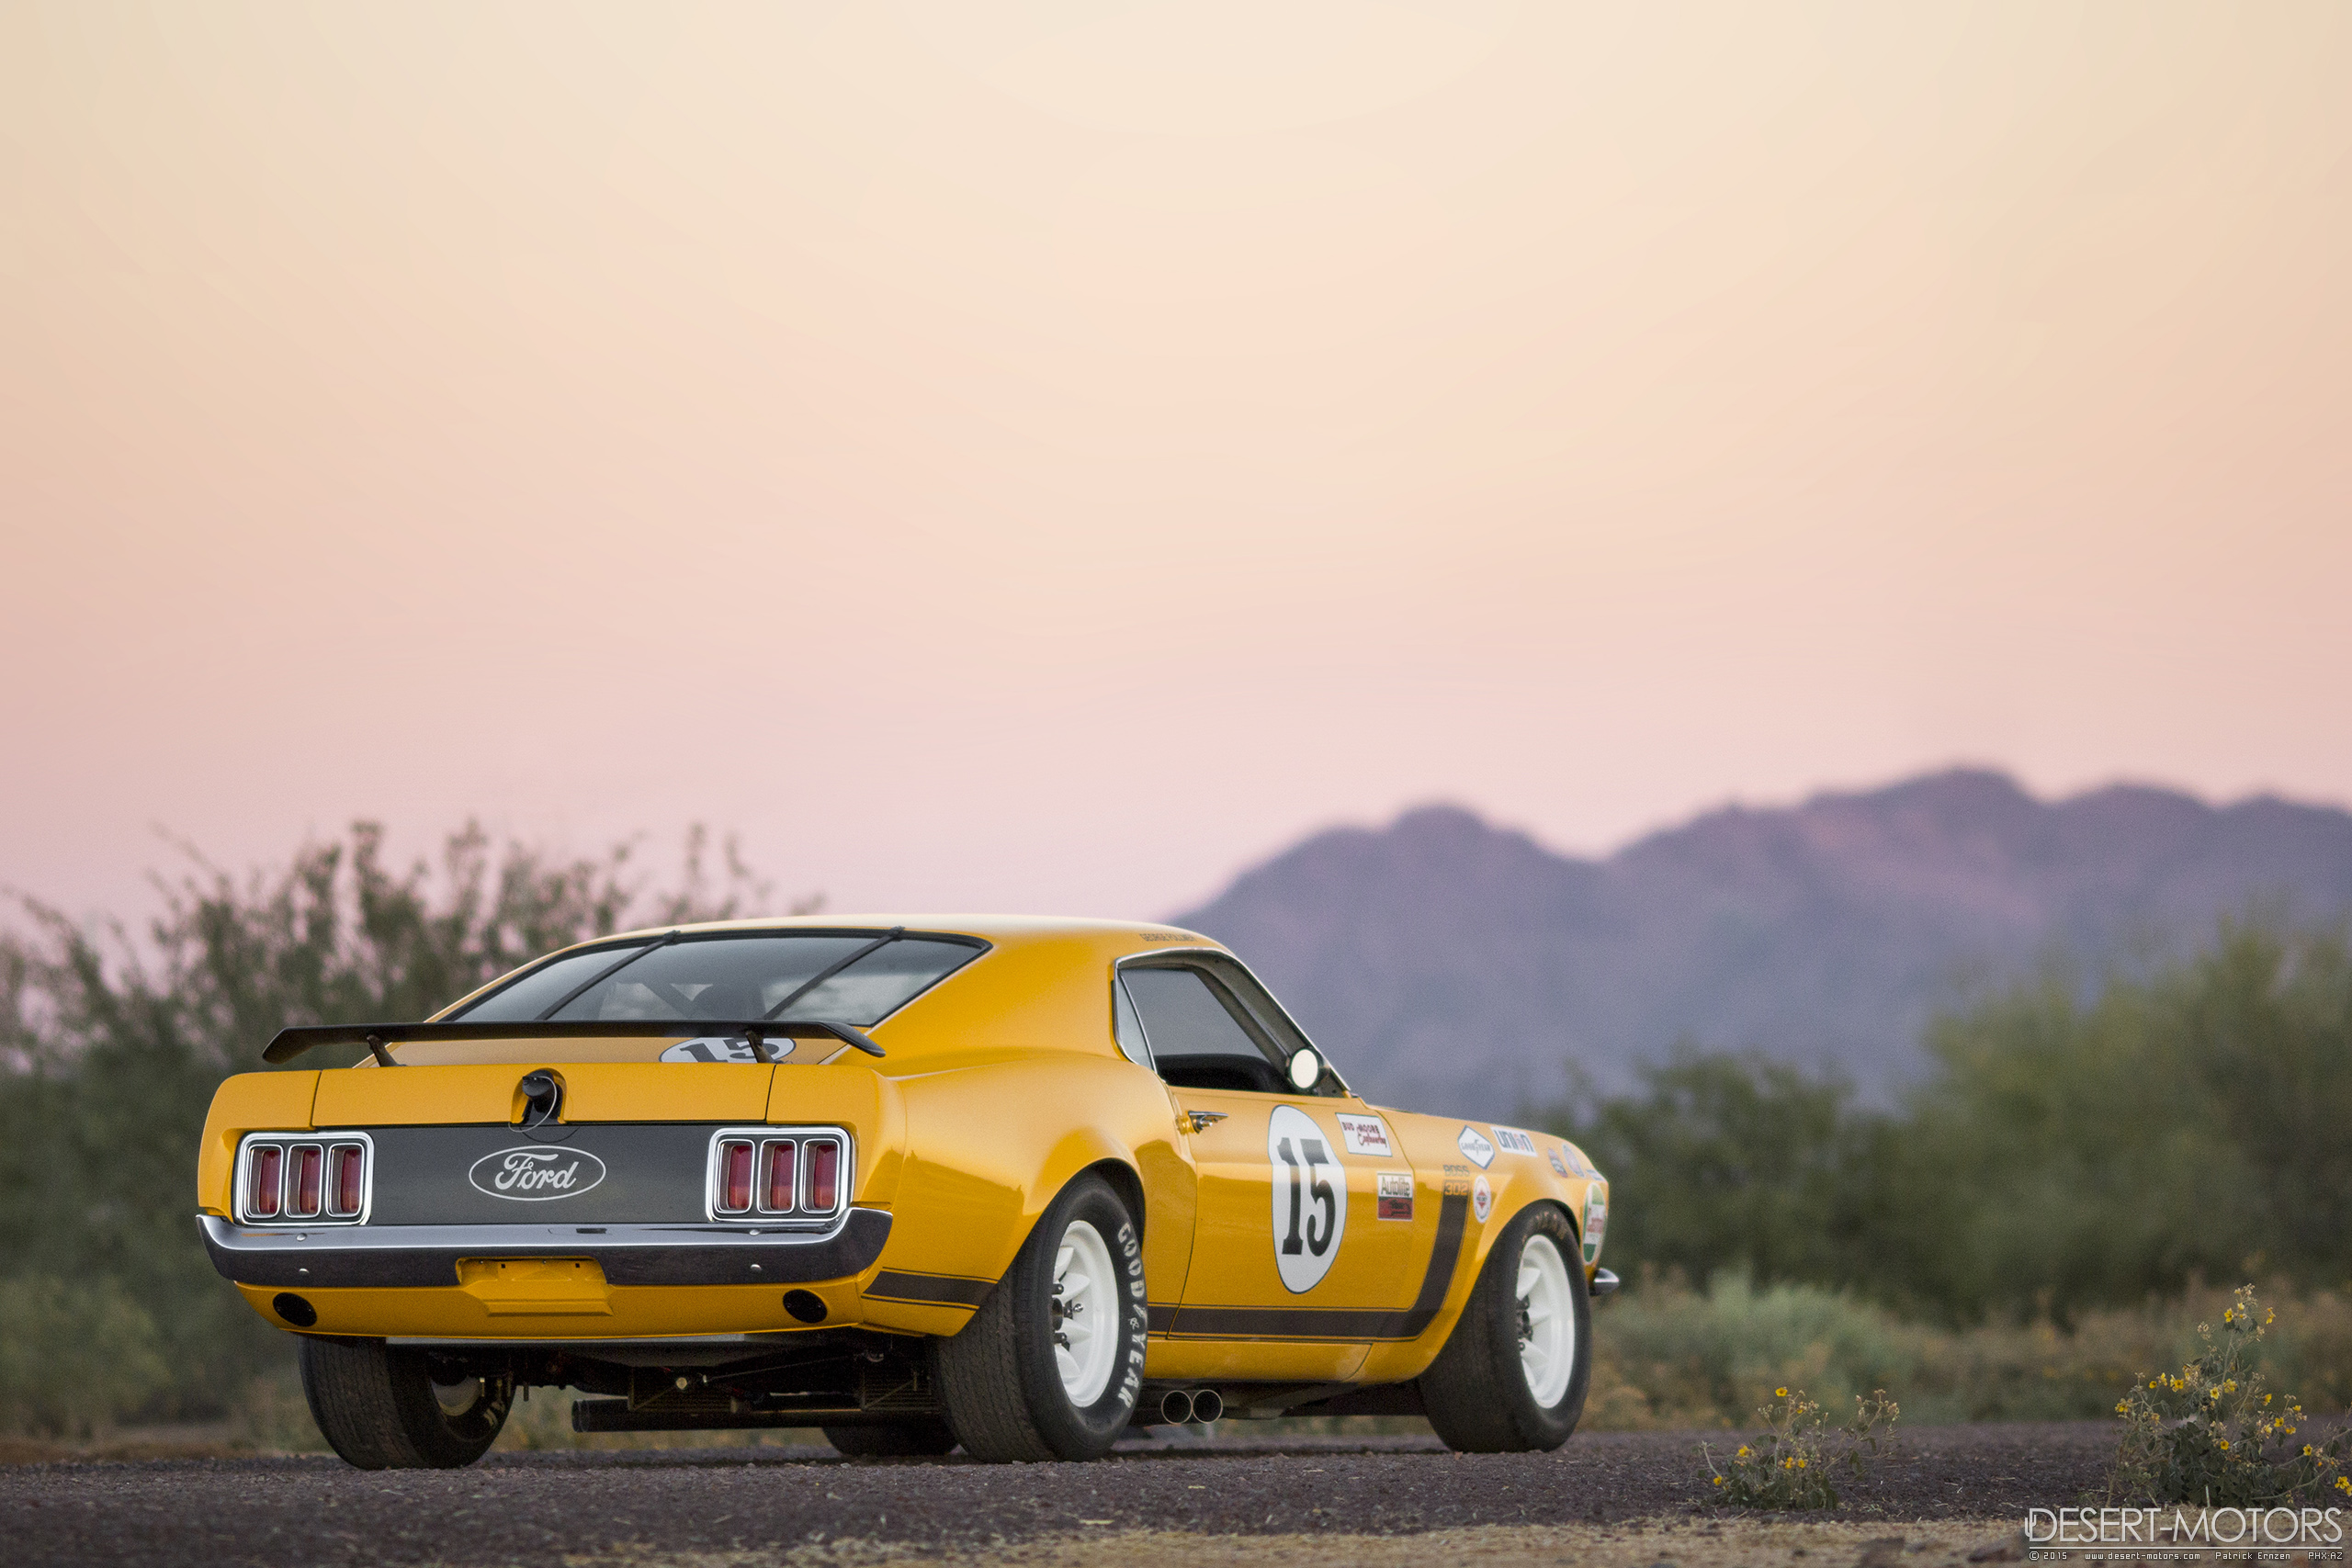 1970 ford mustang boss 302 kar kraft trans am desert motors this success however led to the ford motor companys support with kar kraft supplying mustang boss 302s for the 19691971 seasons sciox Gallery